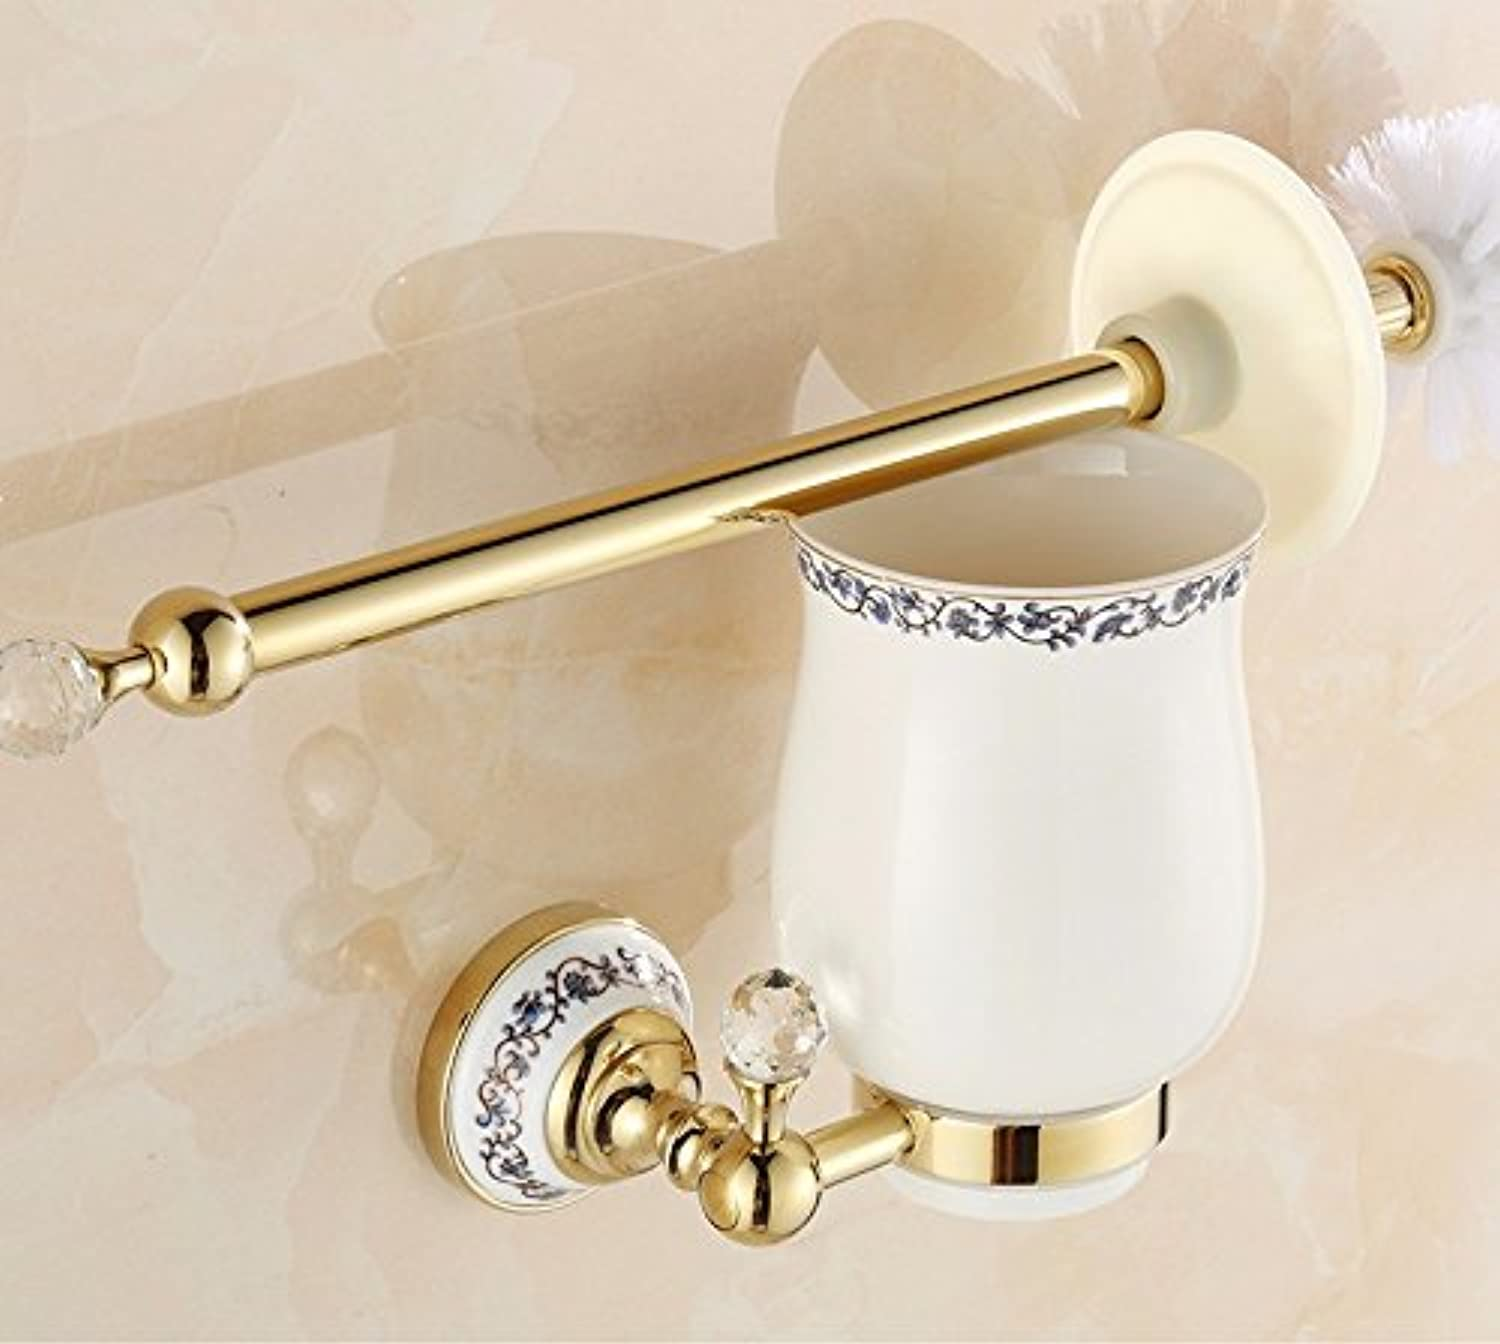 Lx.AZ.Kx Toilet Brush and Holder with long handle for Bathroom Toilet The Copper?Continental?Crystal Toilet?The Bathrooms?Mount?pink goldd